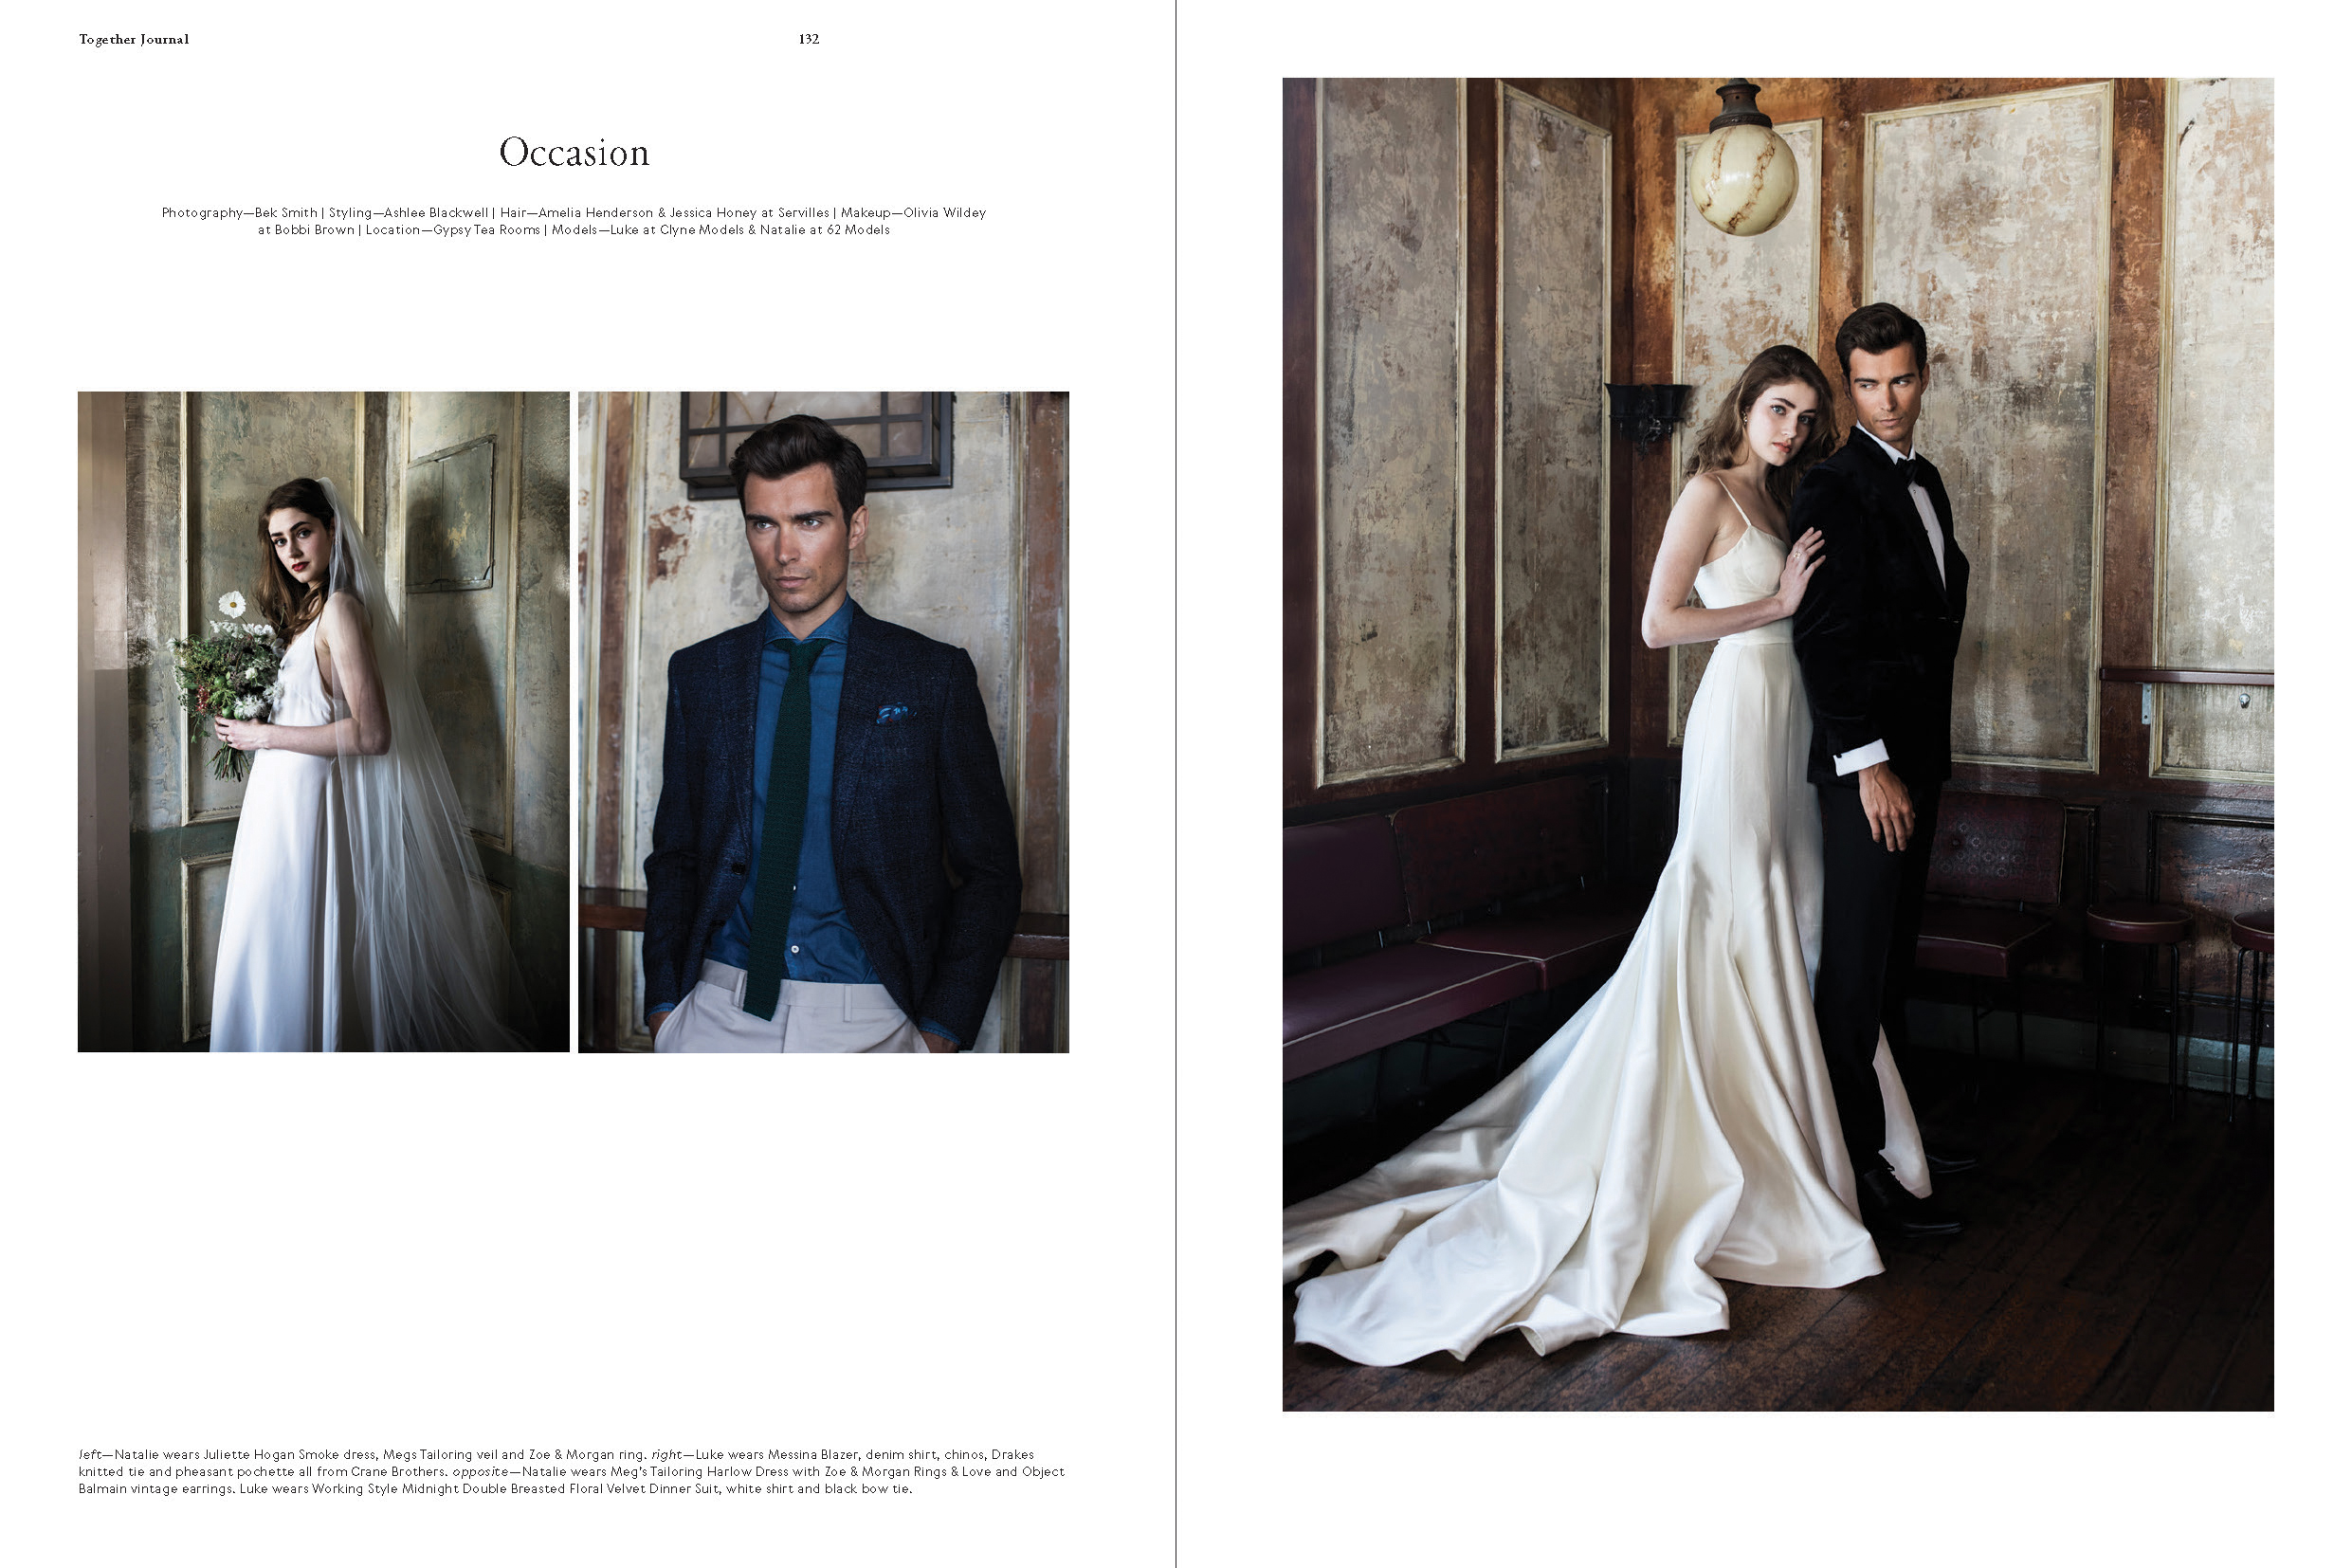 Categories: Fashion-Occasion Fashion Issue 7